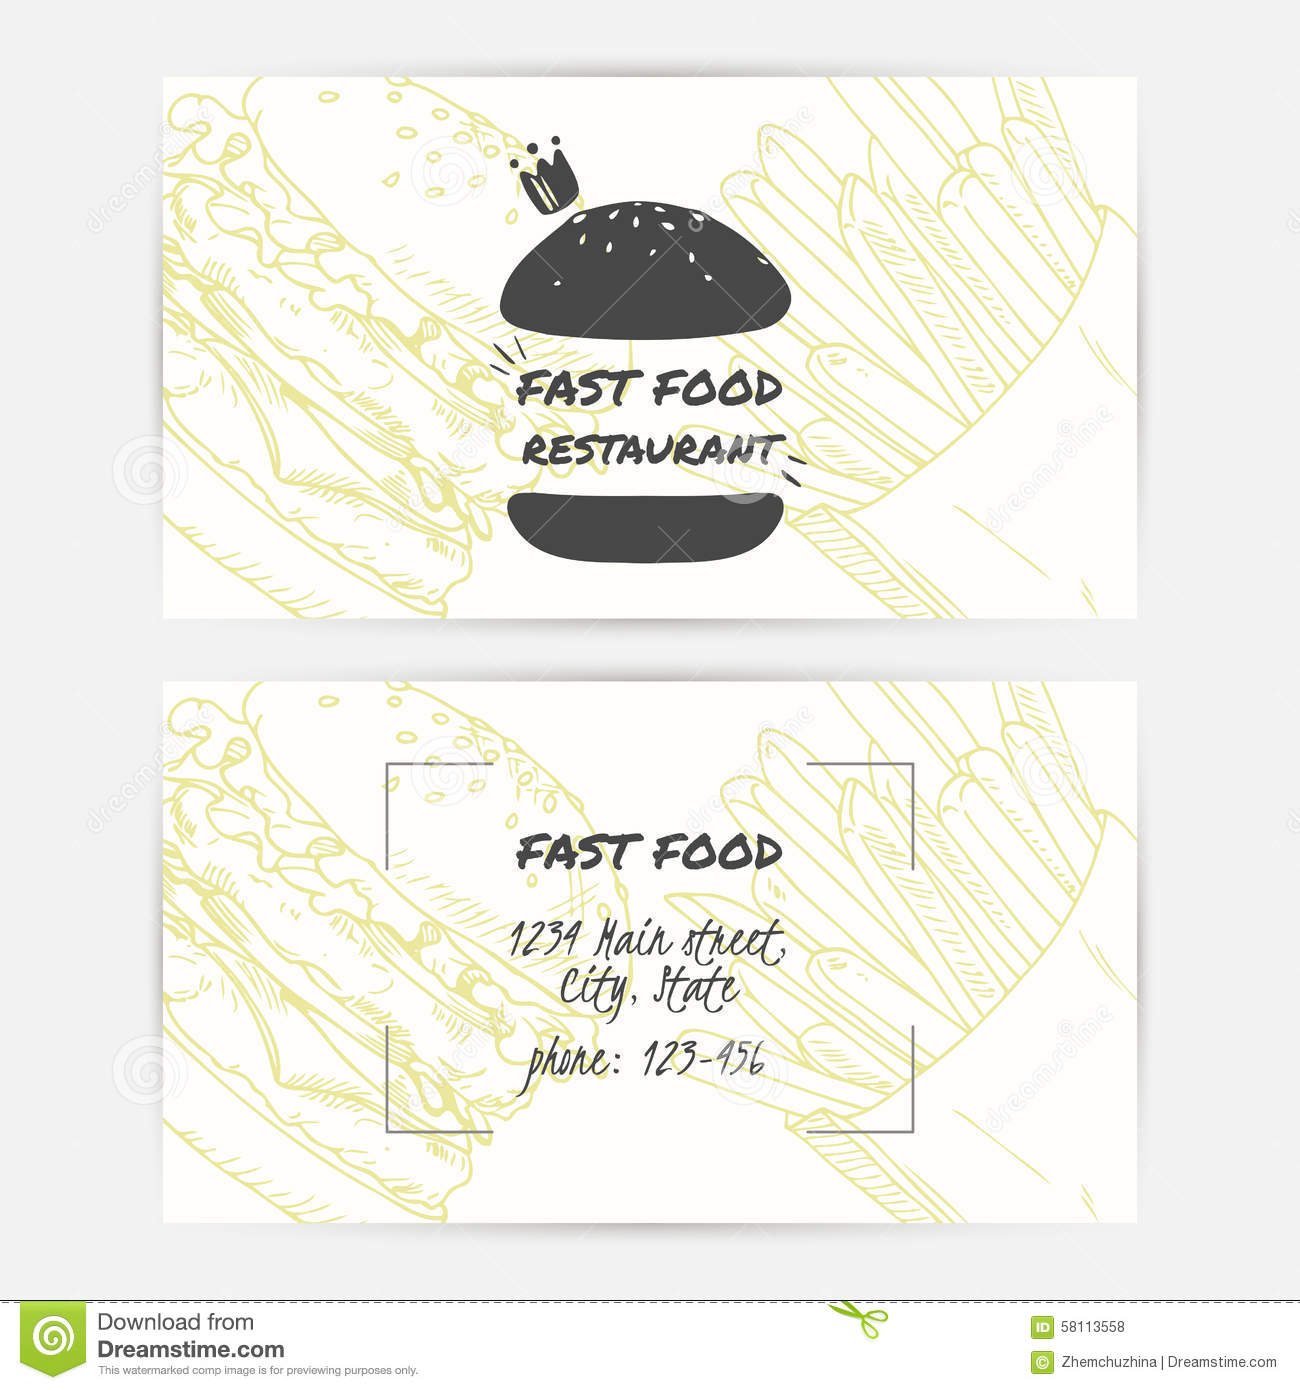 Fast Business Cards   Unlimitedgamers.co